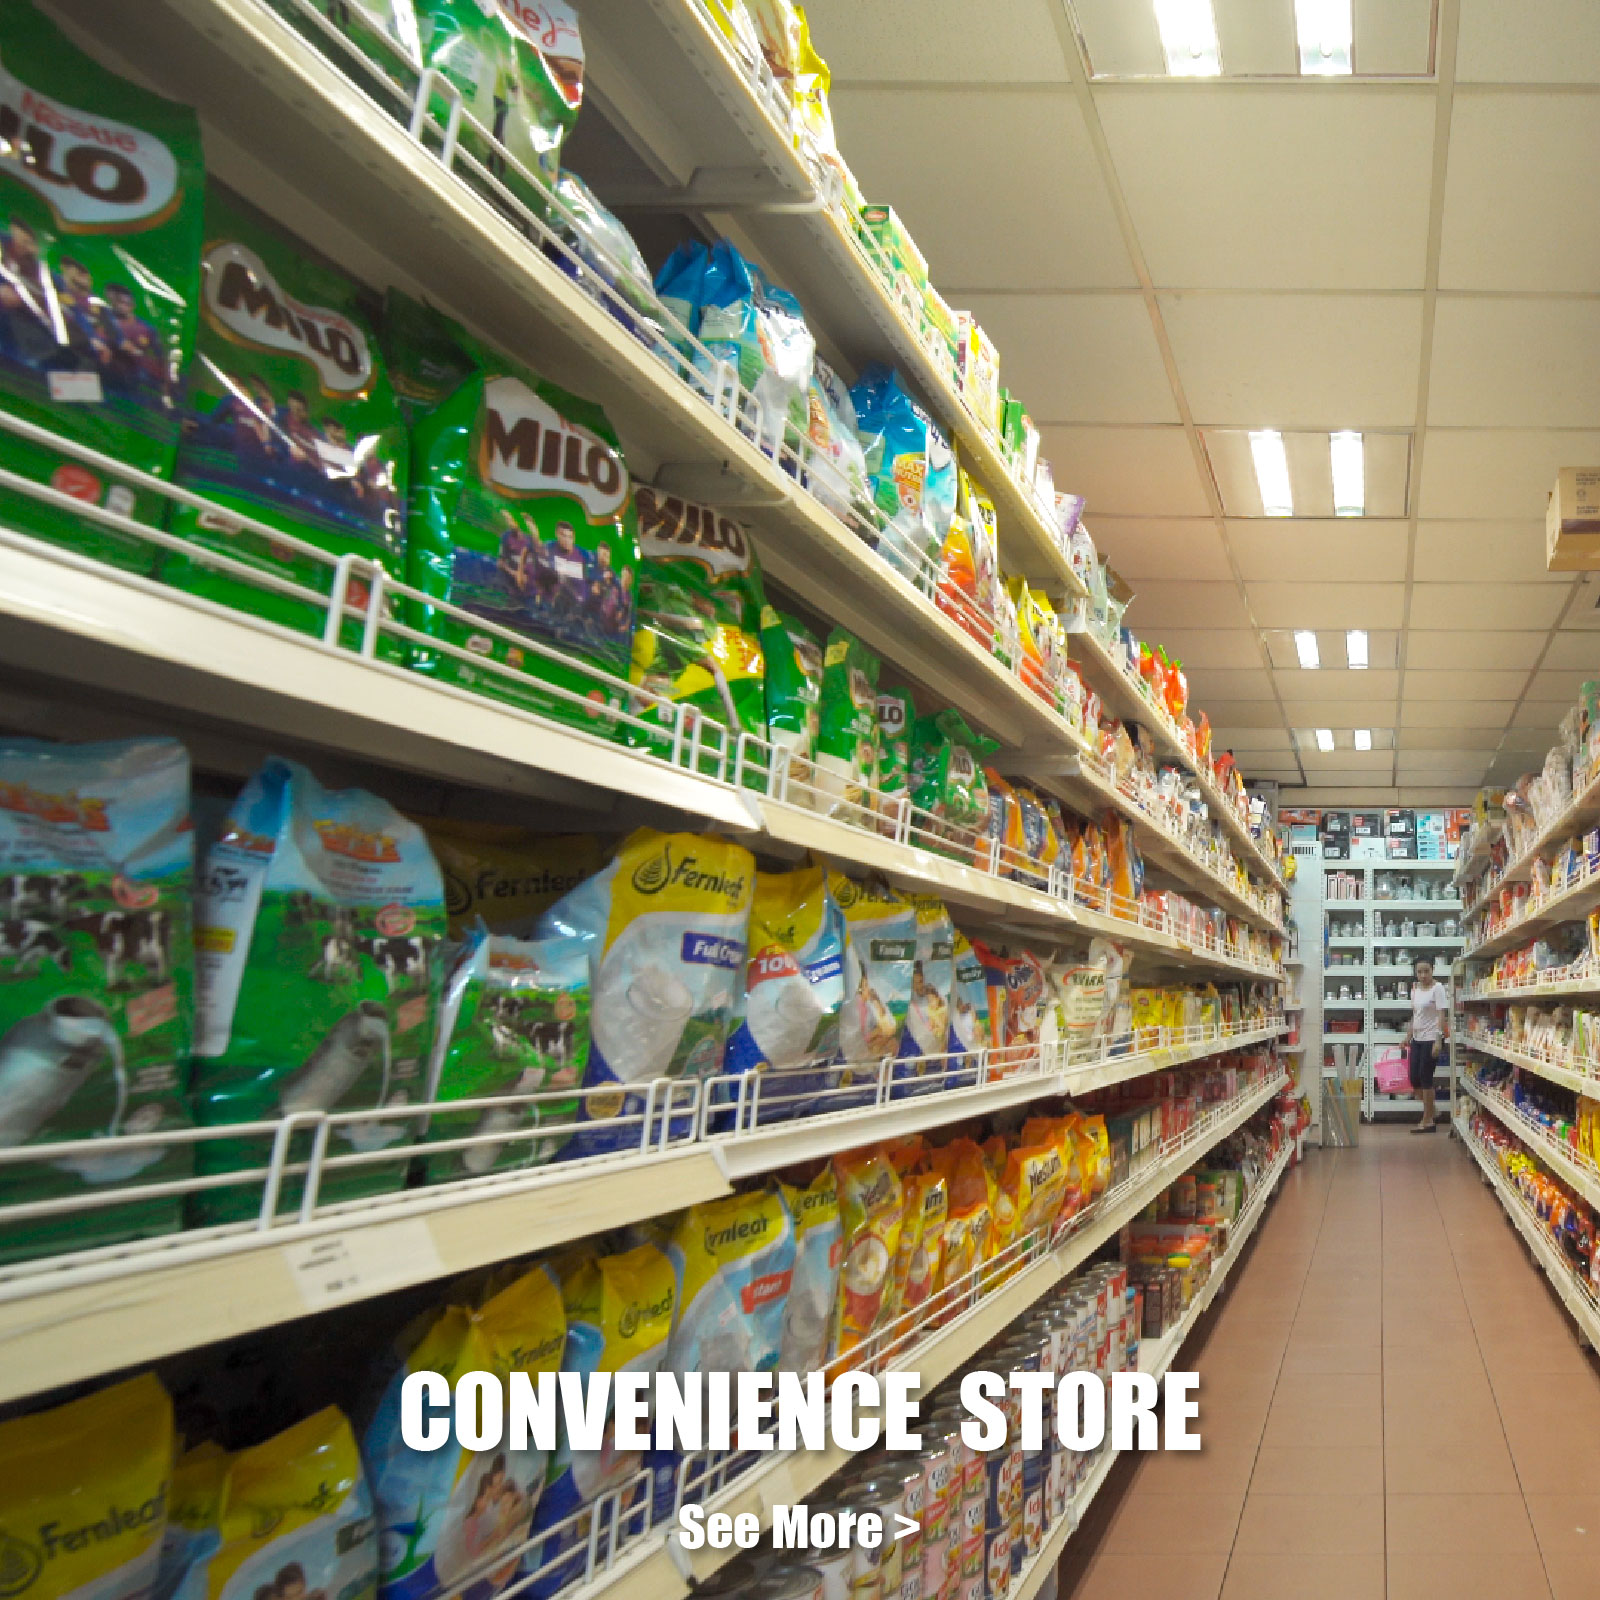 Convenience Store Image - Our Businesses Section - Homepage-01